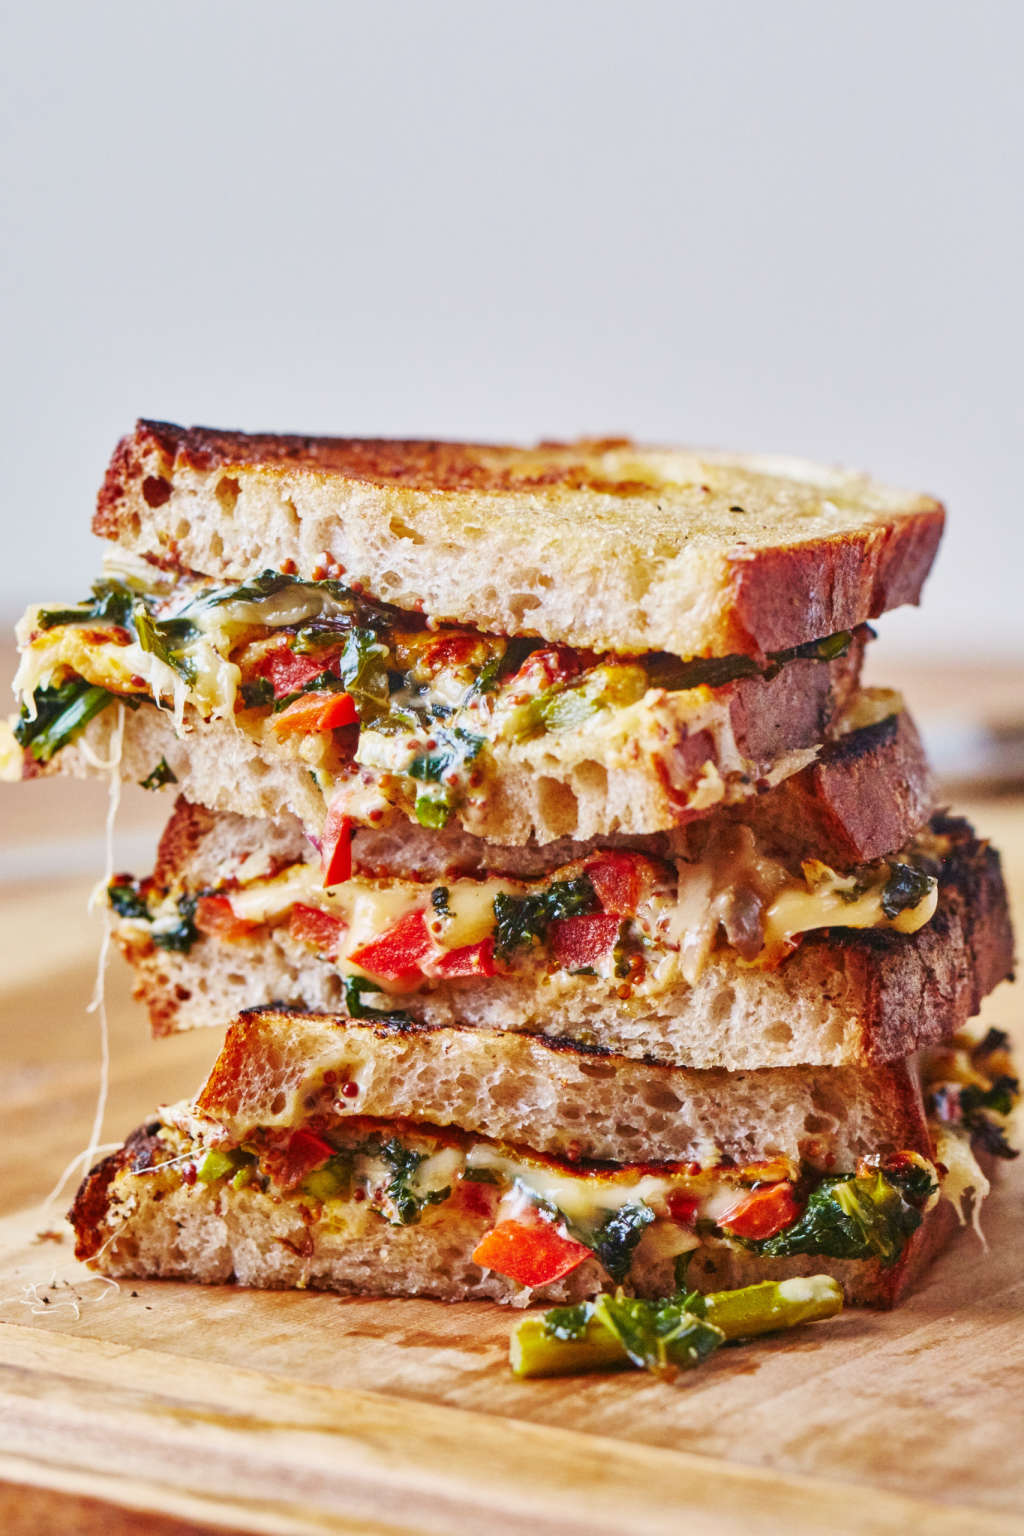 Meet the Love Child of Grilled Cheese and Vegetables